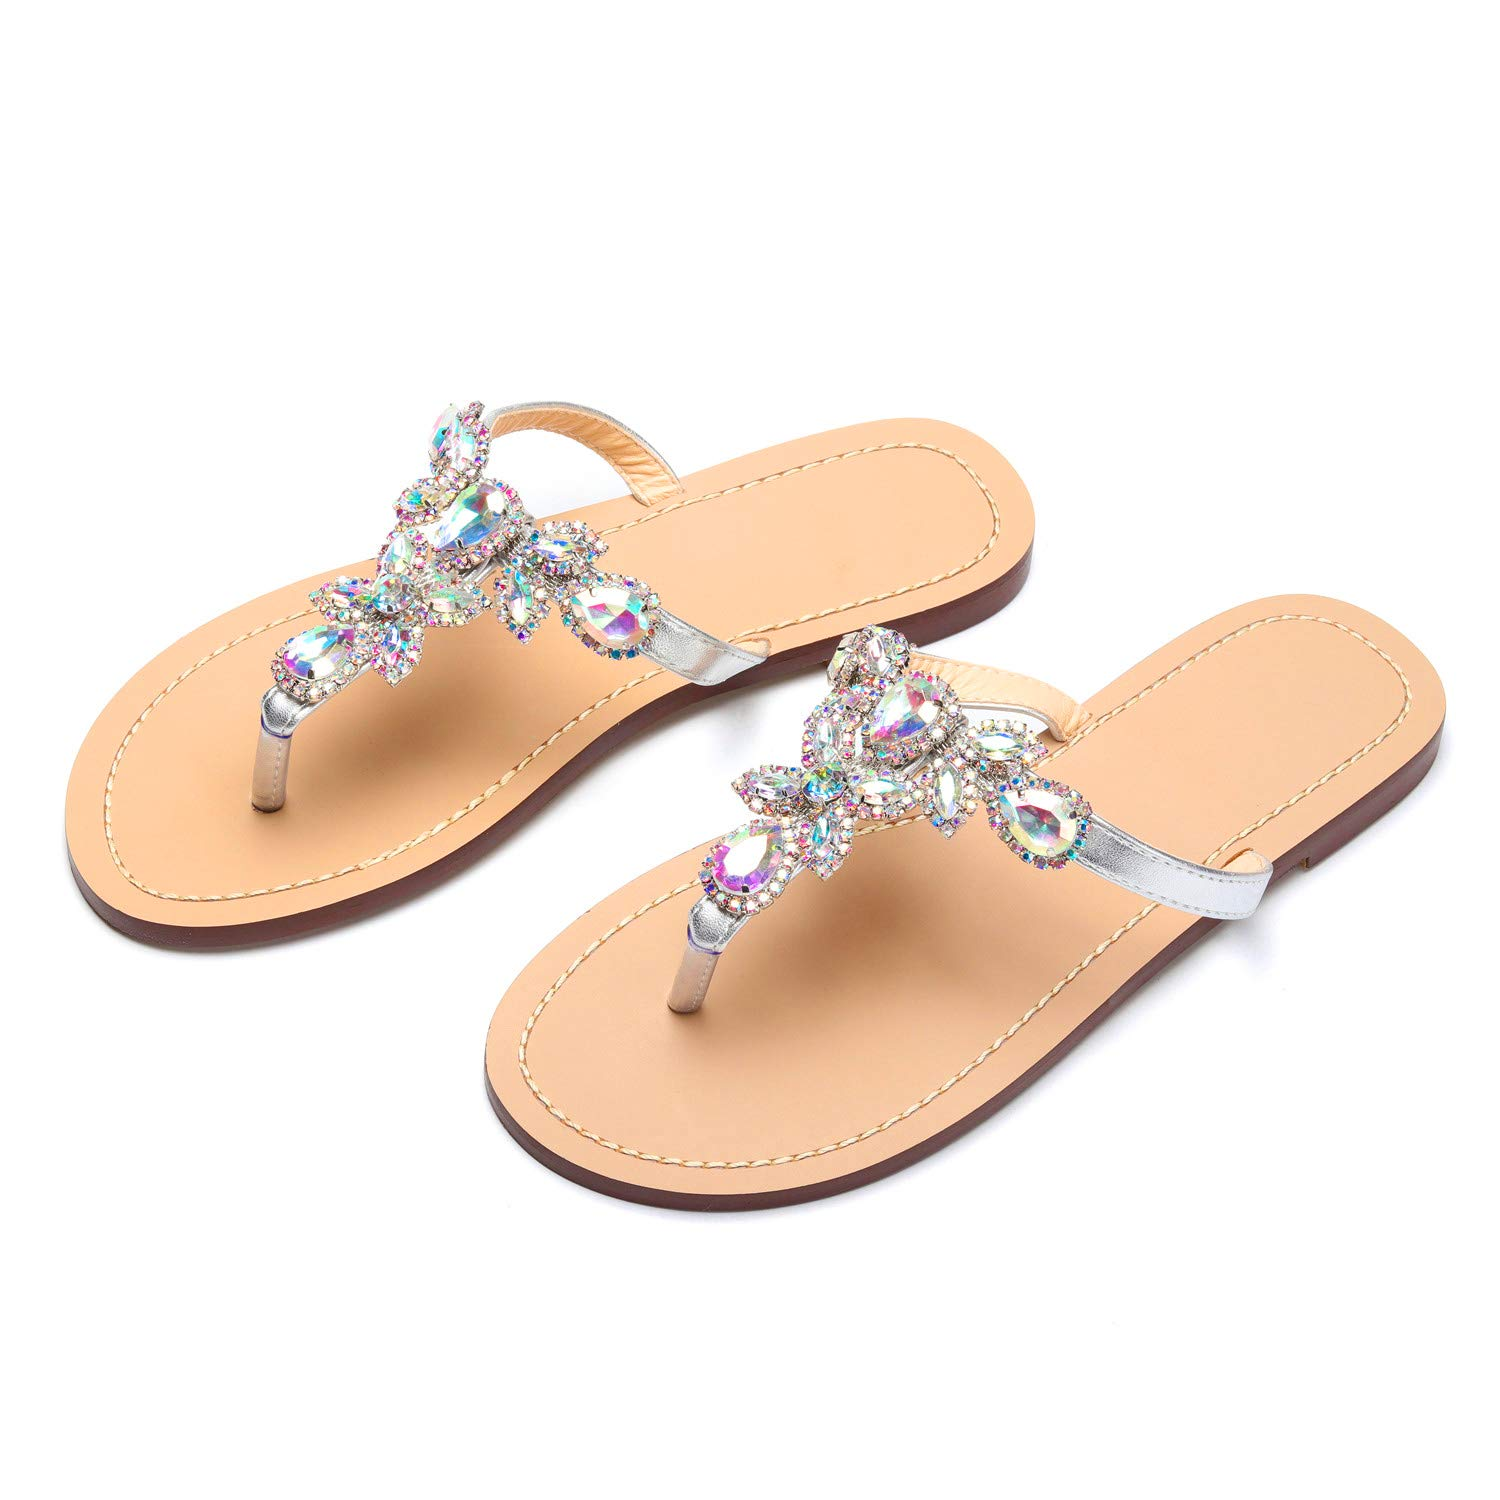 d2a3d2365f4b AZMODO Women s Silver Hand Crafted Flip Flop Rhinestones Sandals Y22  Amazon .co.uk  Shoes   Bags